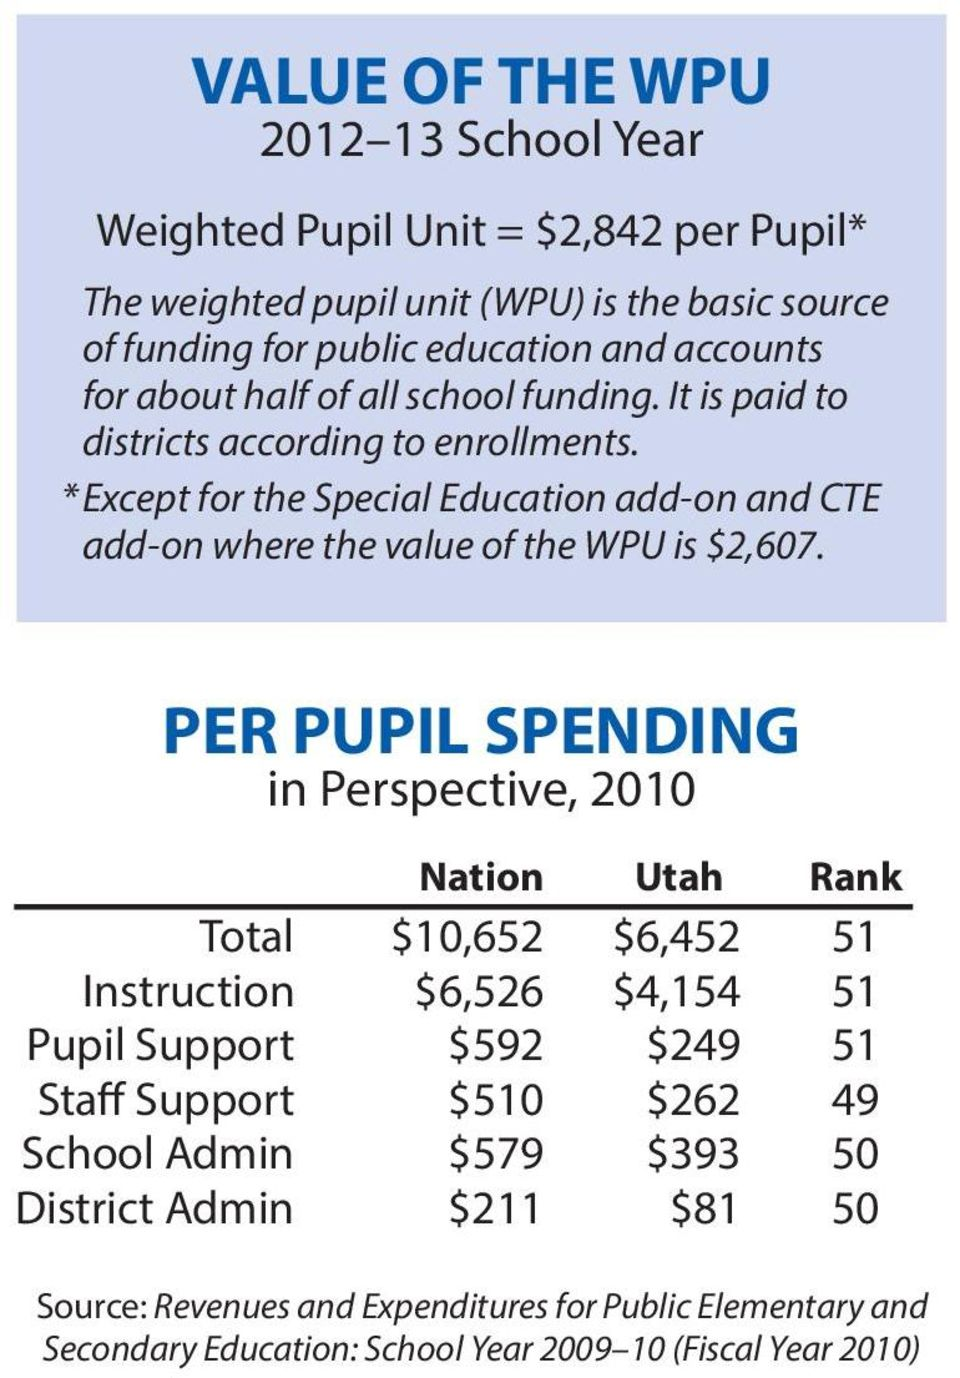 * Except for the Special Education add-on and CTE add-on where the value of the WPU is $2,607.